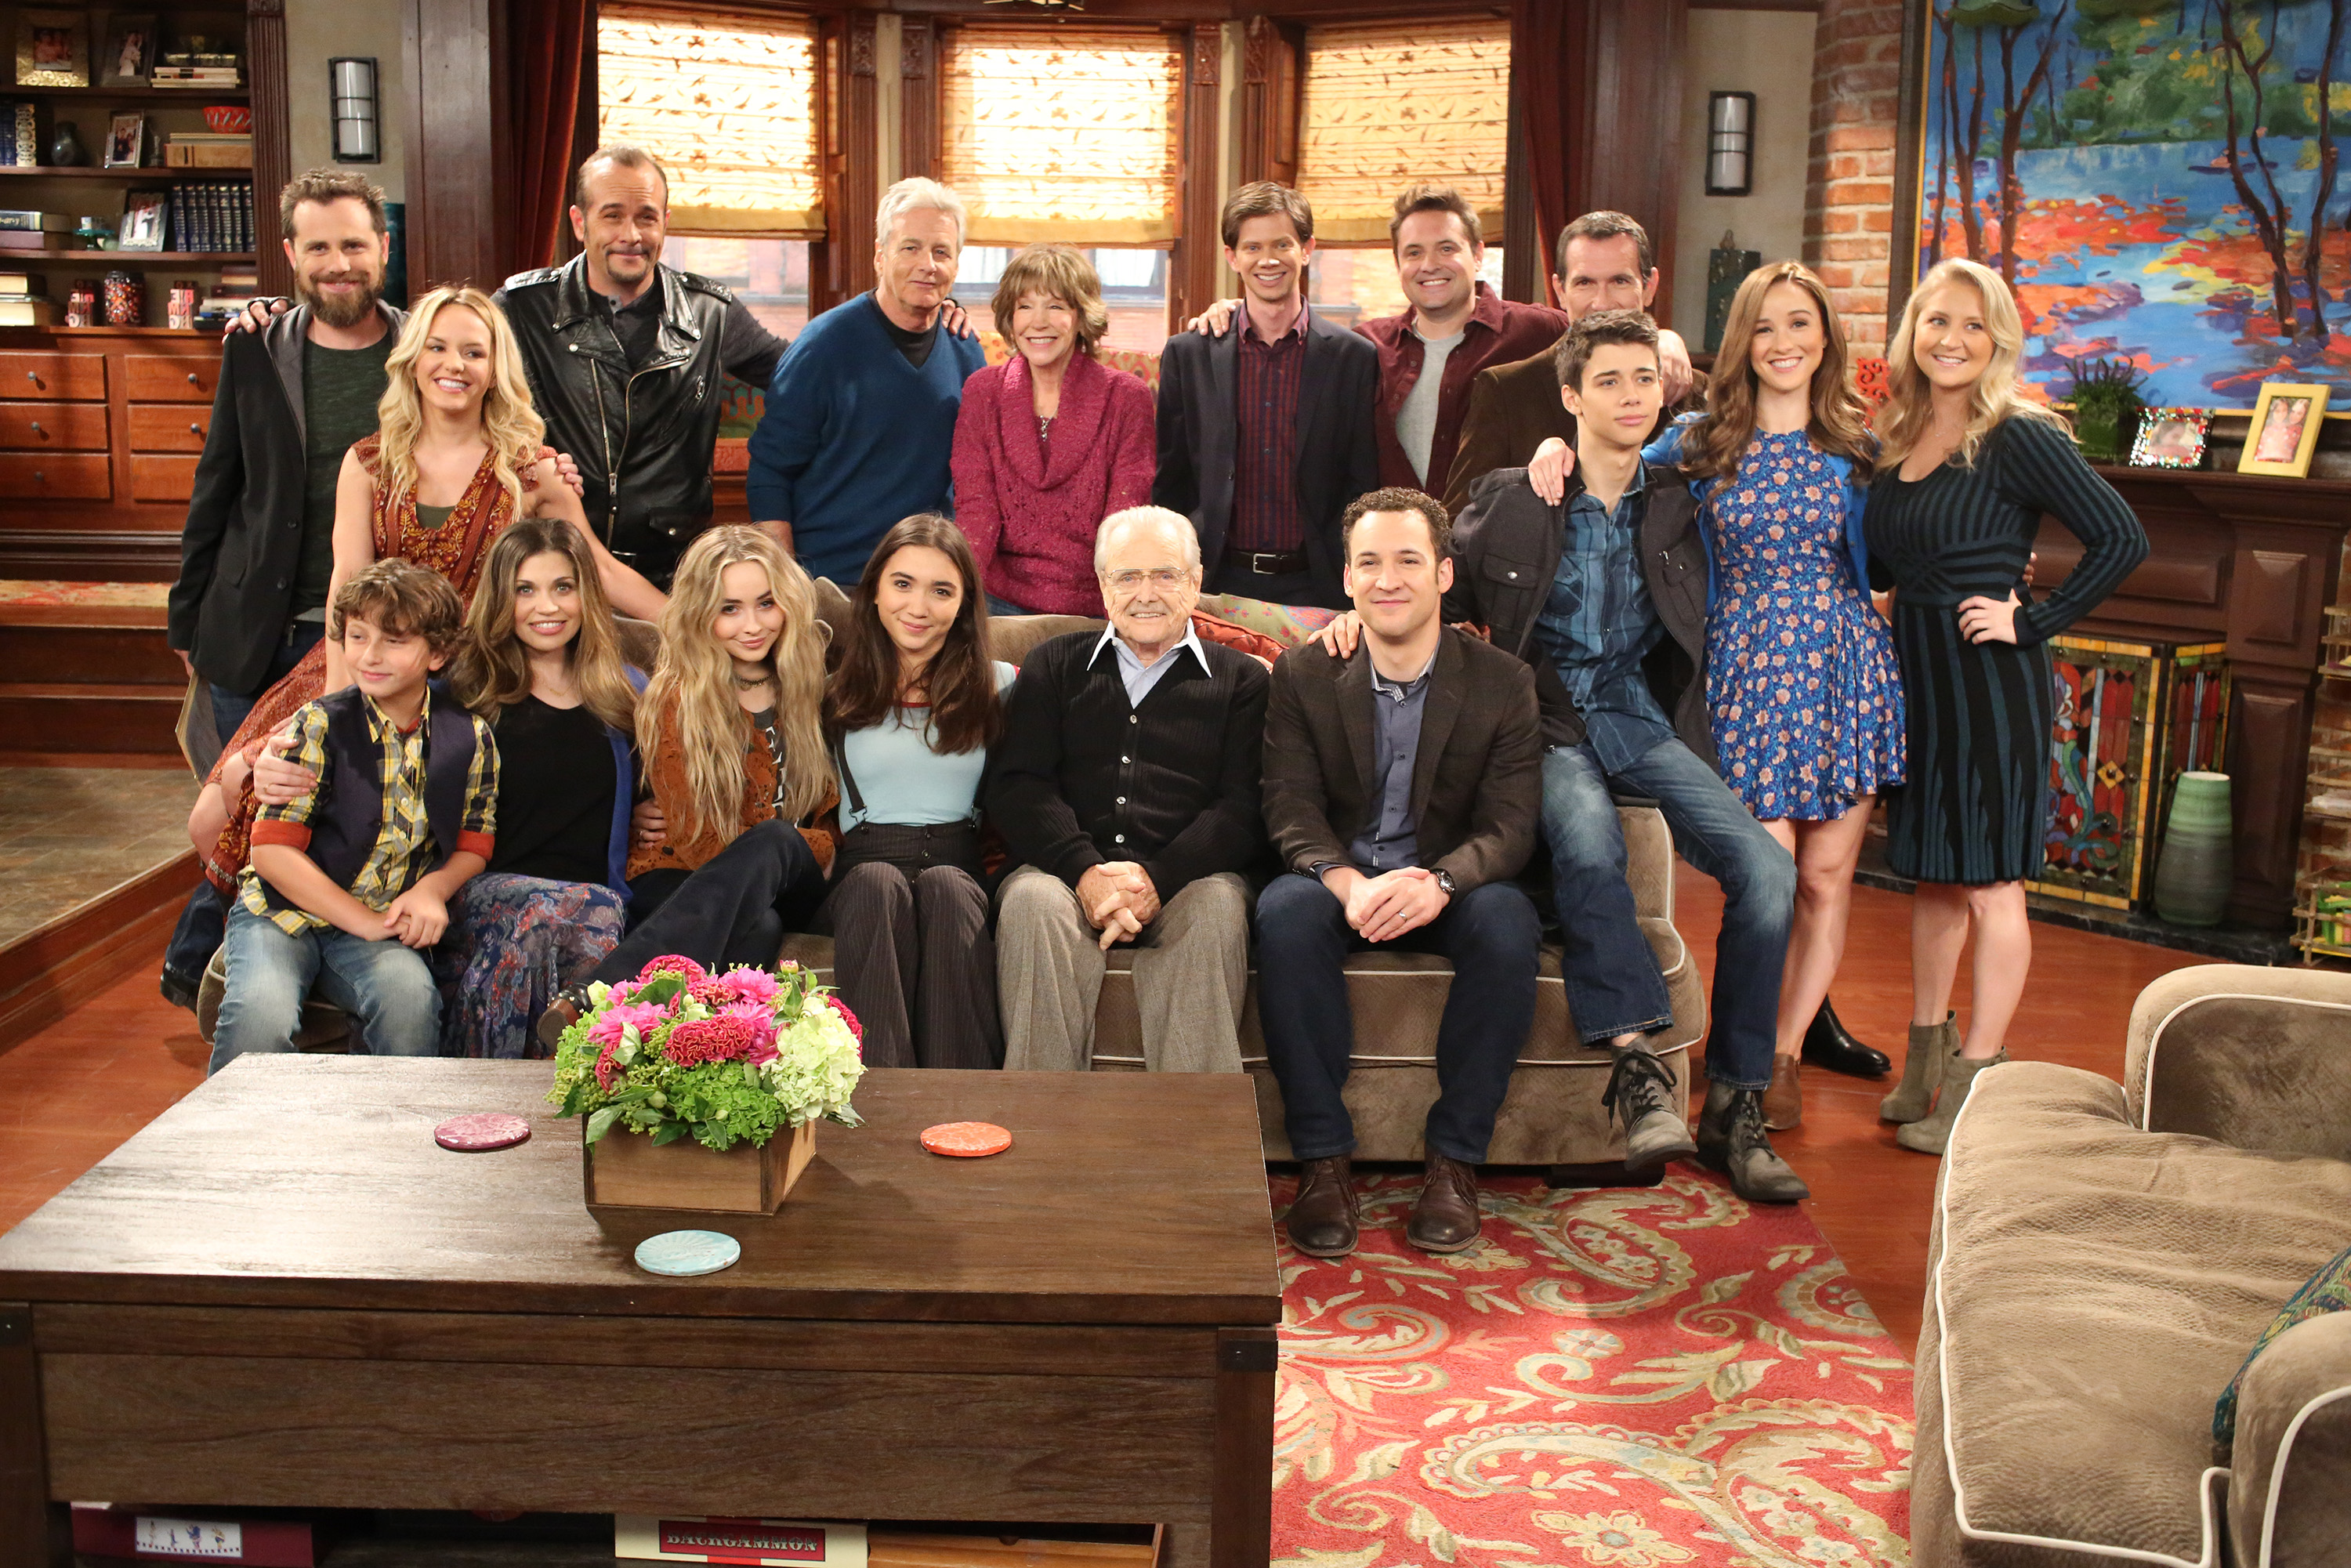 "GIRL MEETS WORLD - ""Girl Meets Ilha das Flores"" (Disney Channel/Ron Tom)BACK ROW: RIDER STRONG, CHERYL TEXIERA, DANNY MCNULTY, WILLIAM RUSS, BETSY RANDLE, LEE NORRIS, WILL FRIEDLE, ANTHONY TYLER QUINN;FRONT ROW: AUGUST MATURO, DANIELLE FISHEL, SABRINA CARPENTER, ROWAN BLANCHARD, WILLIAM DANIELS, BEN SAVAGE, URIAH SHELTON, LILY NICKSAY, LINDSAY RIDGEWAY, MICHAEL JACOBS"